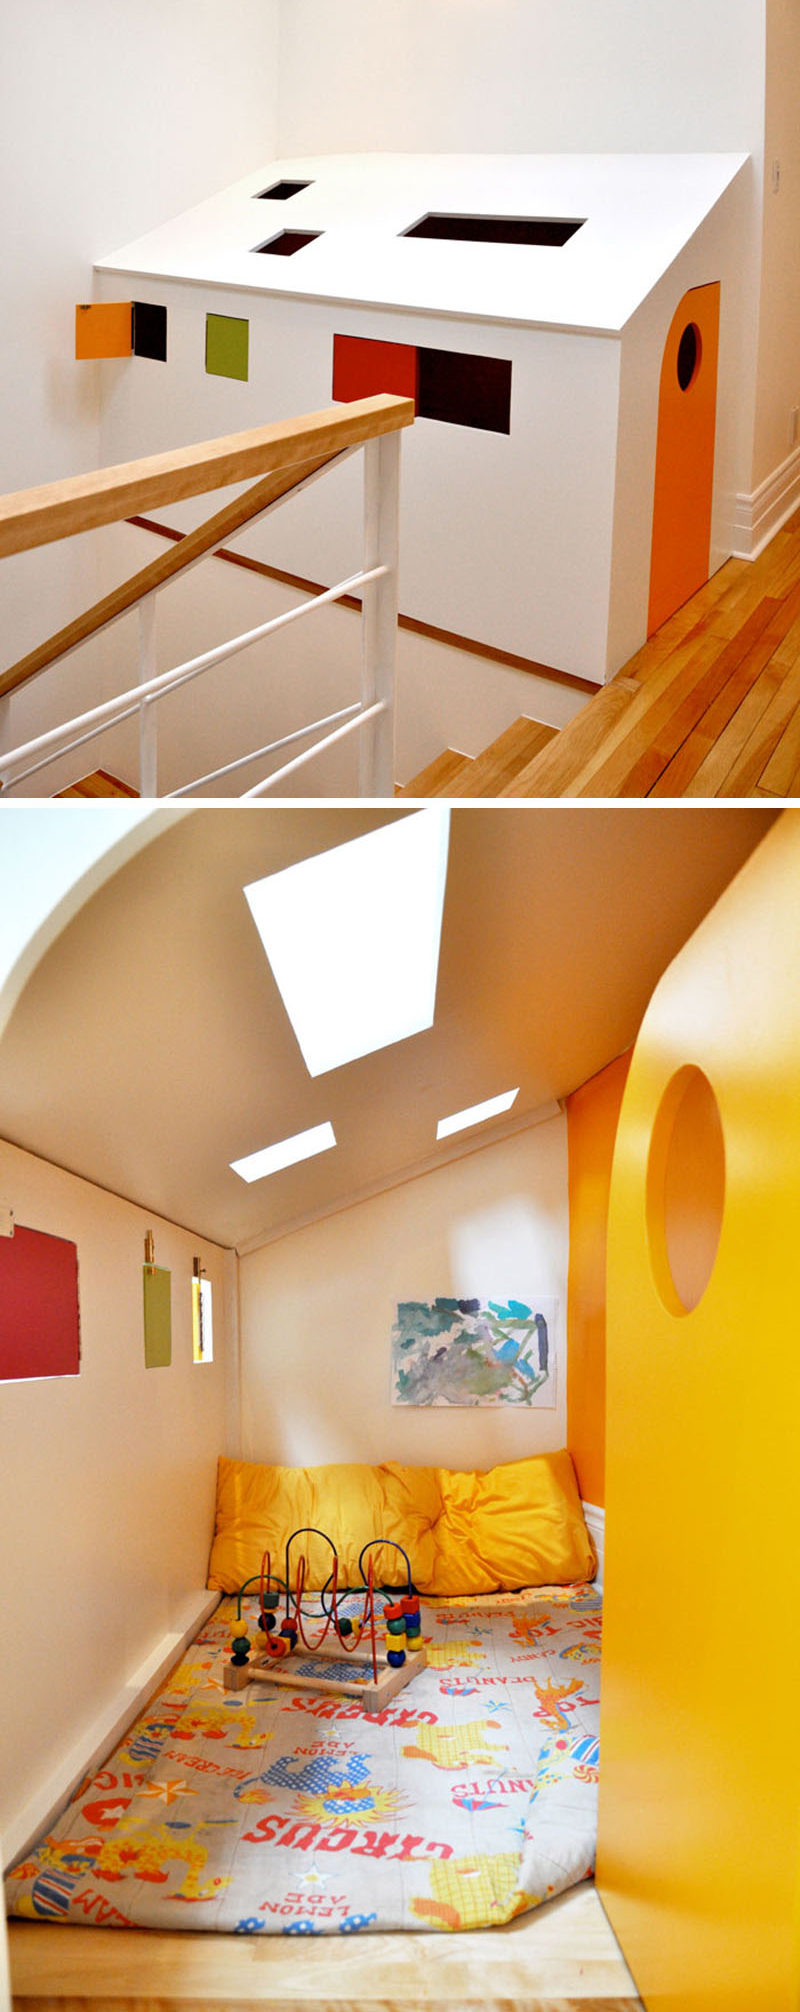 11 Kids Only Hideouts That Even The Biggest Grownups Would Be Jealous Of // A bright little home inside a home is perfect for playing, reading, or even napping.